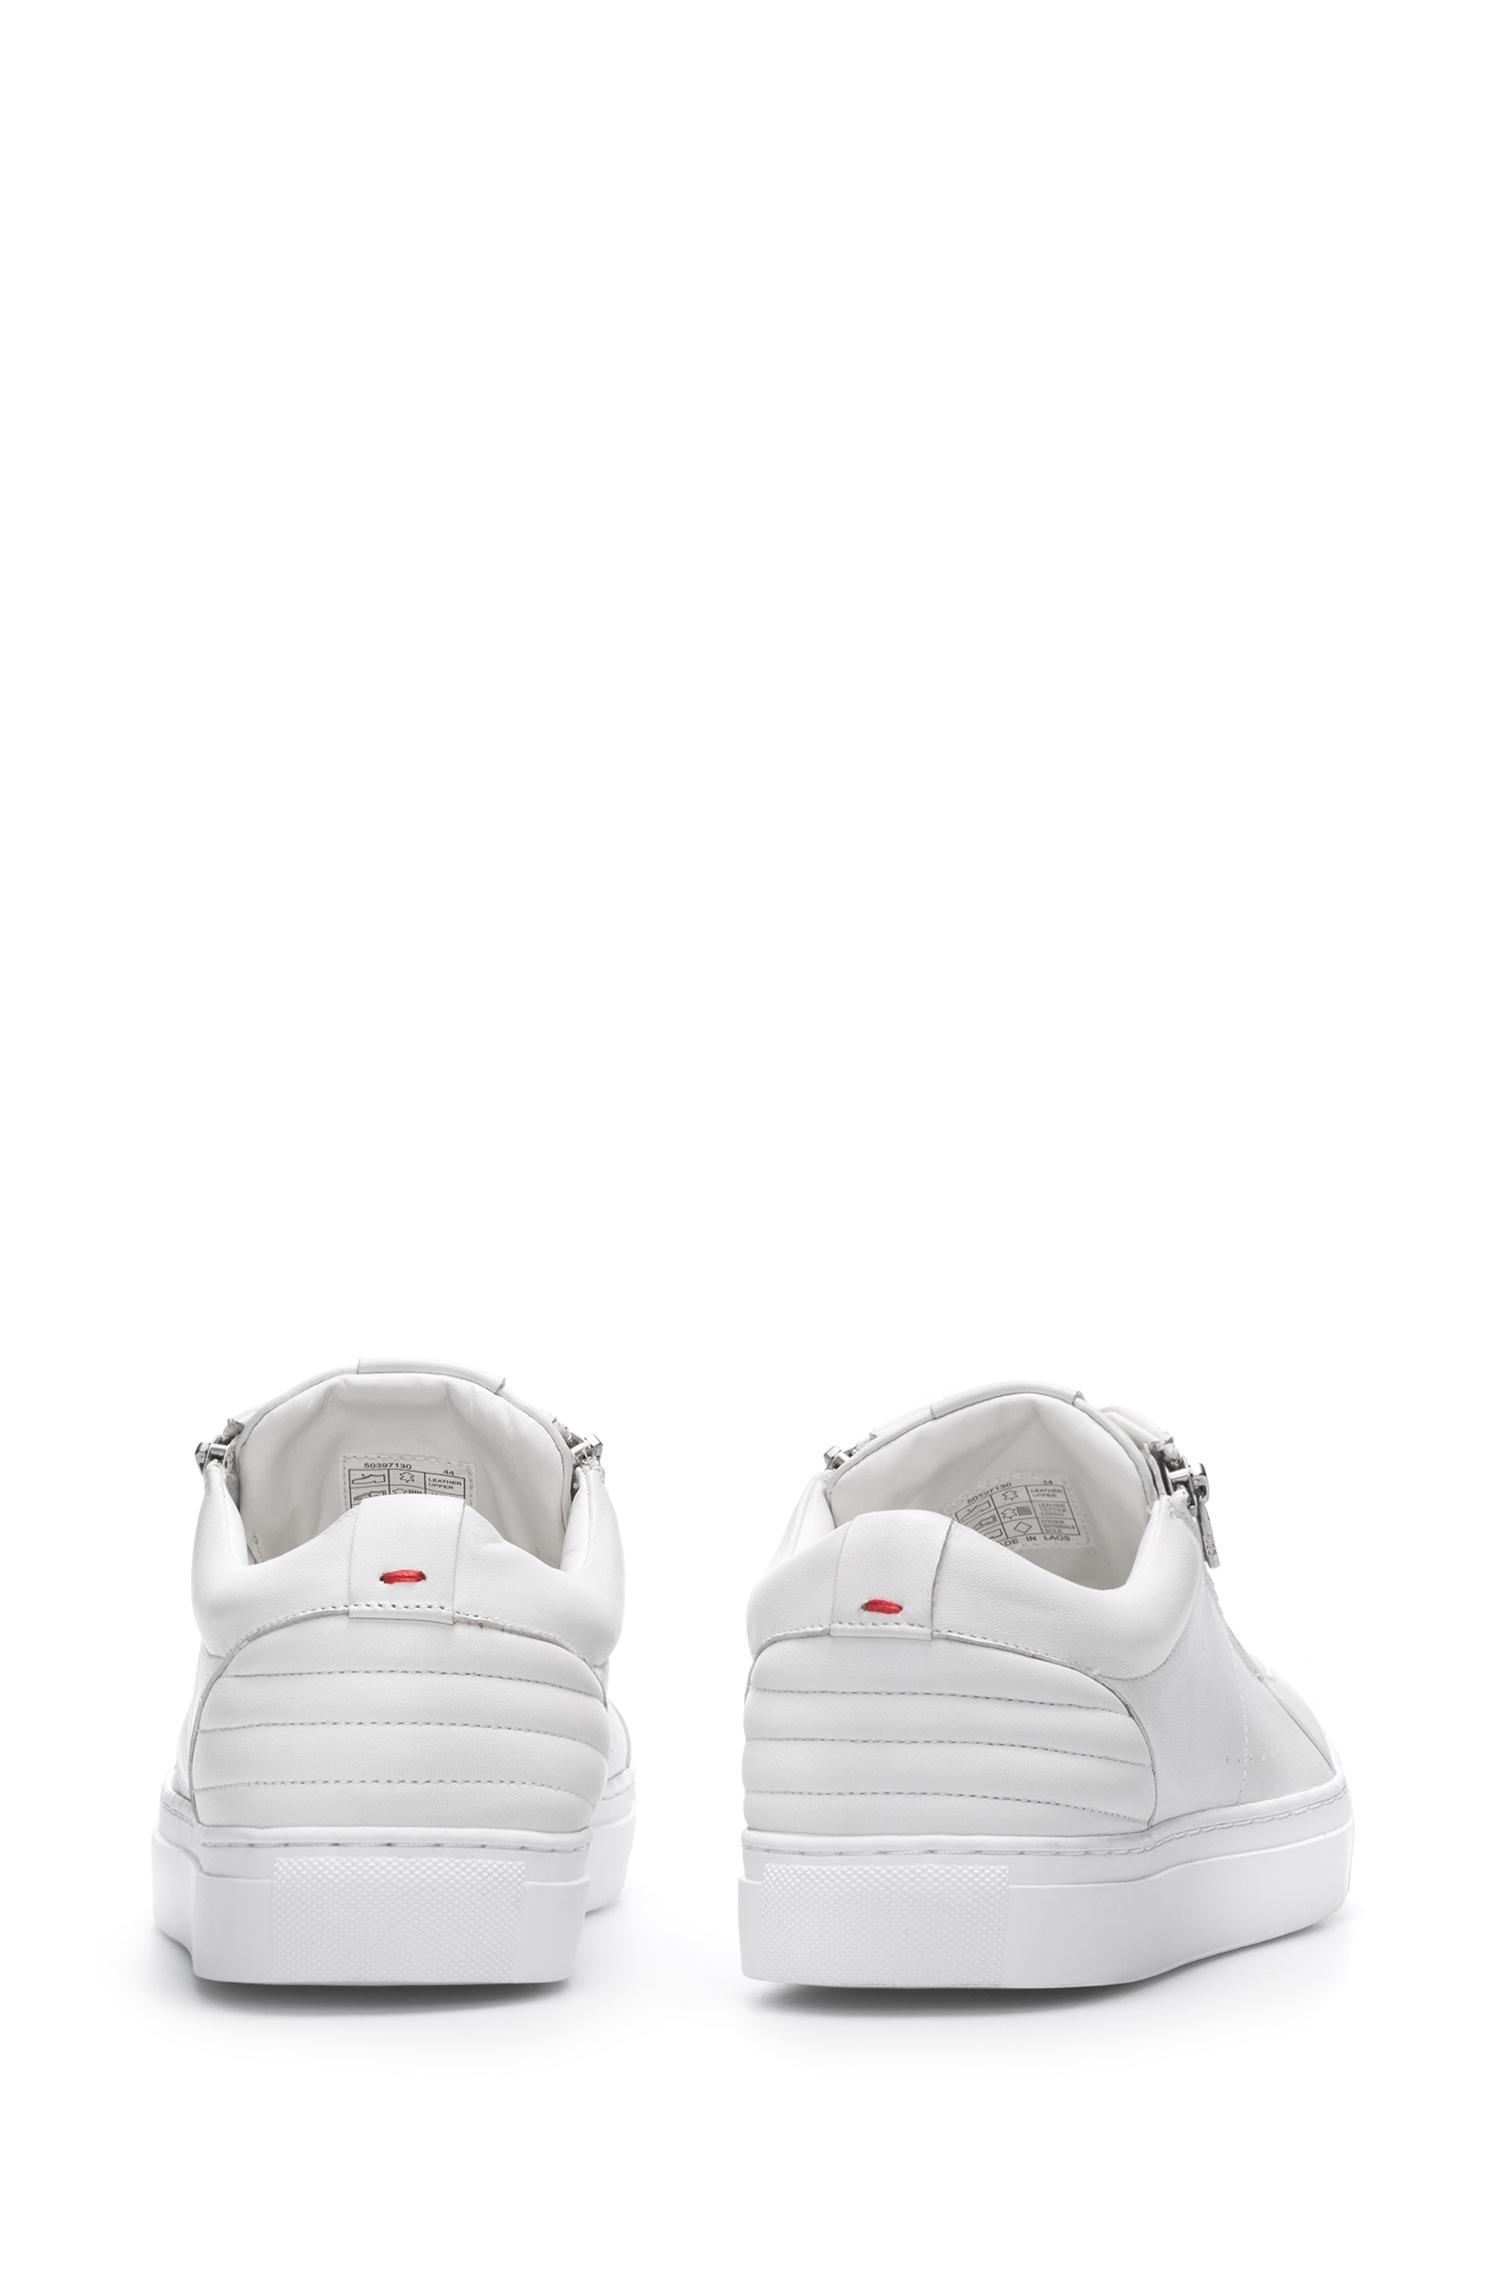 Tennis-style trainers in nappa lambskin with quilting details HUGO BOSS BJDfrF6DZE